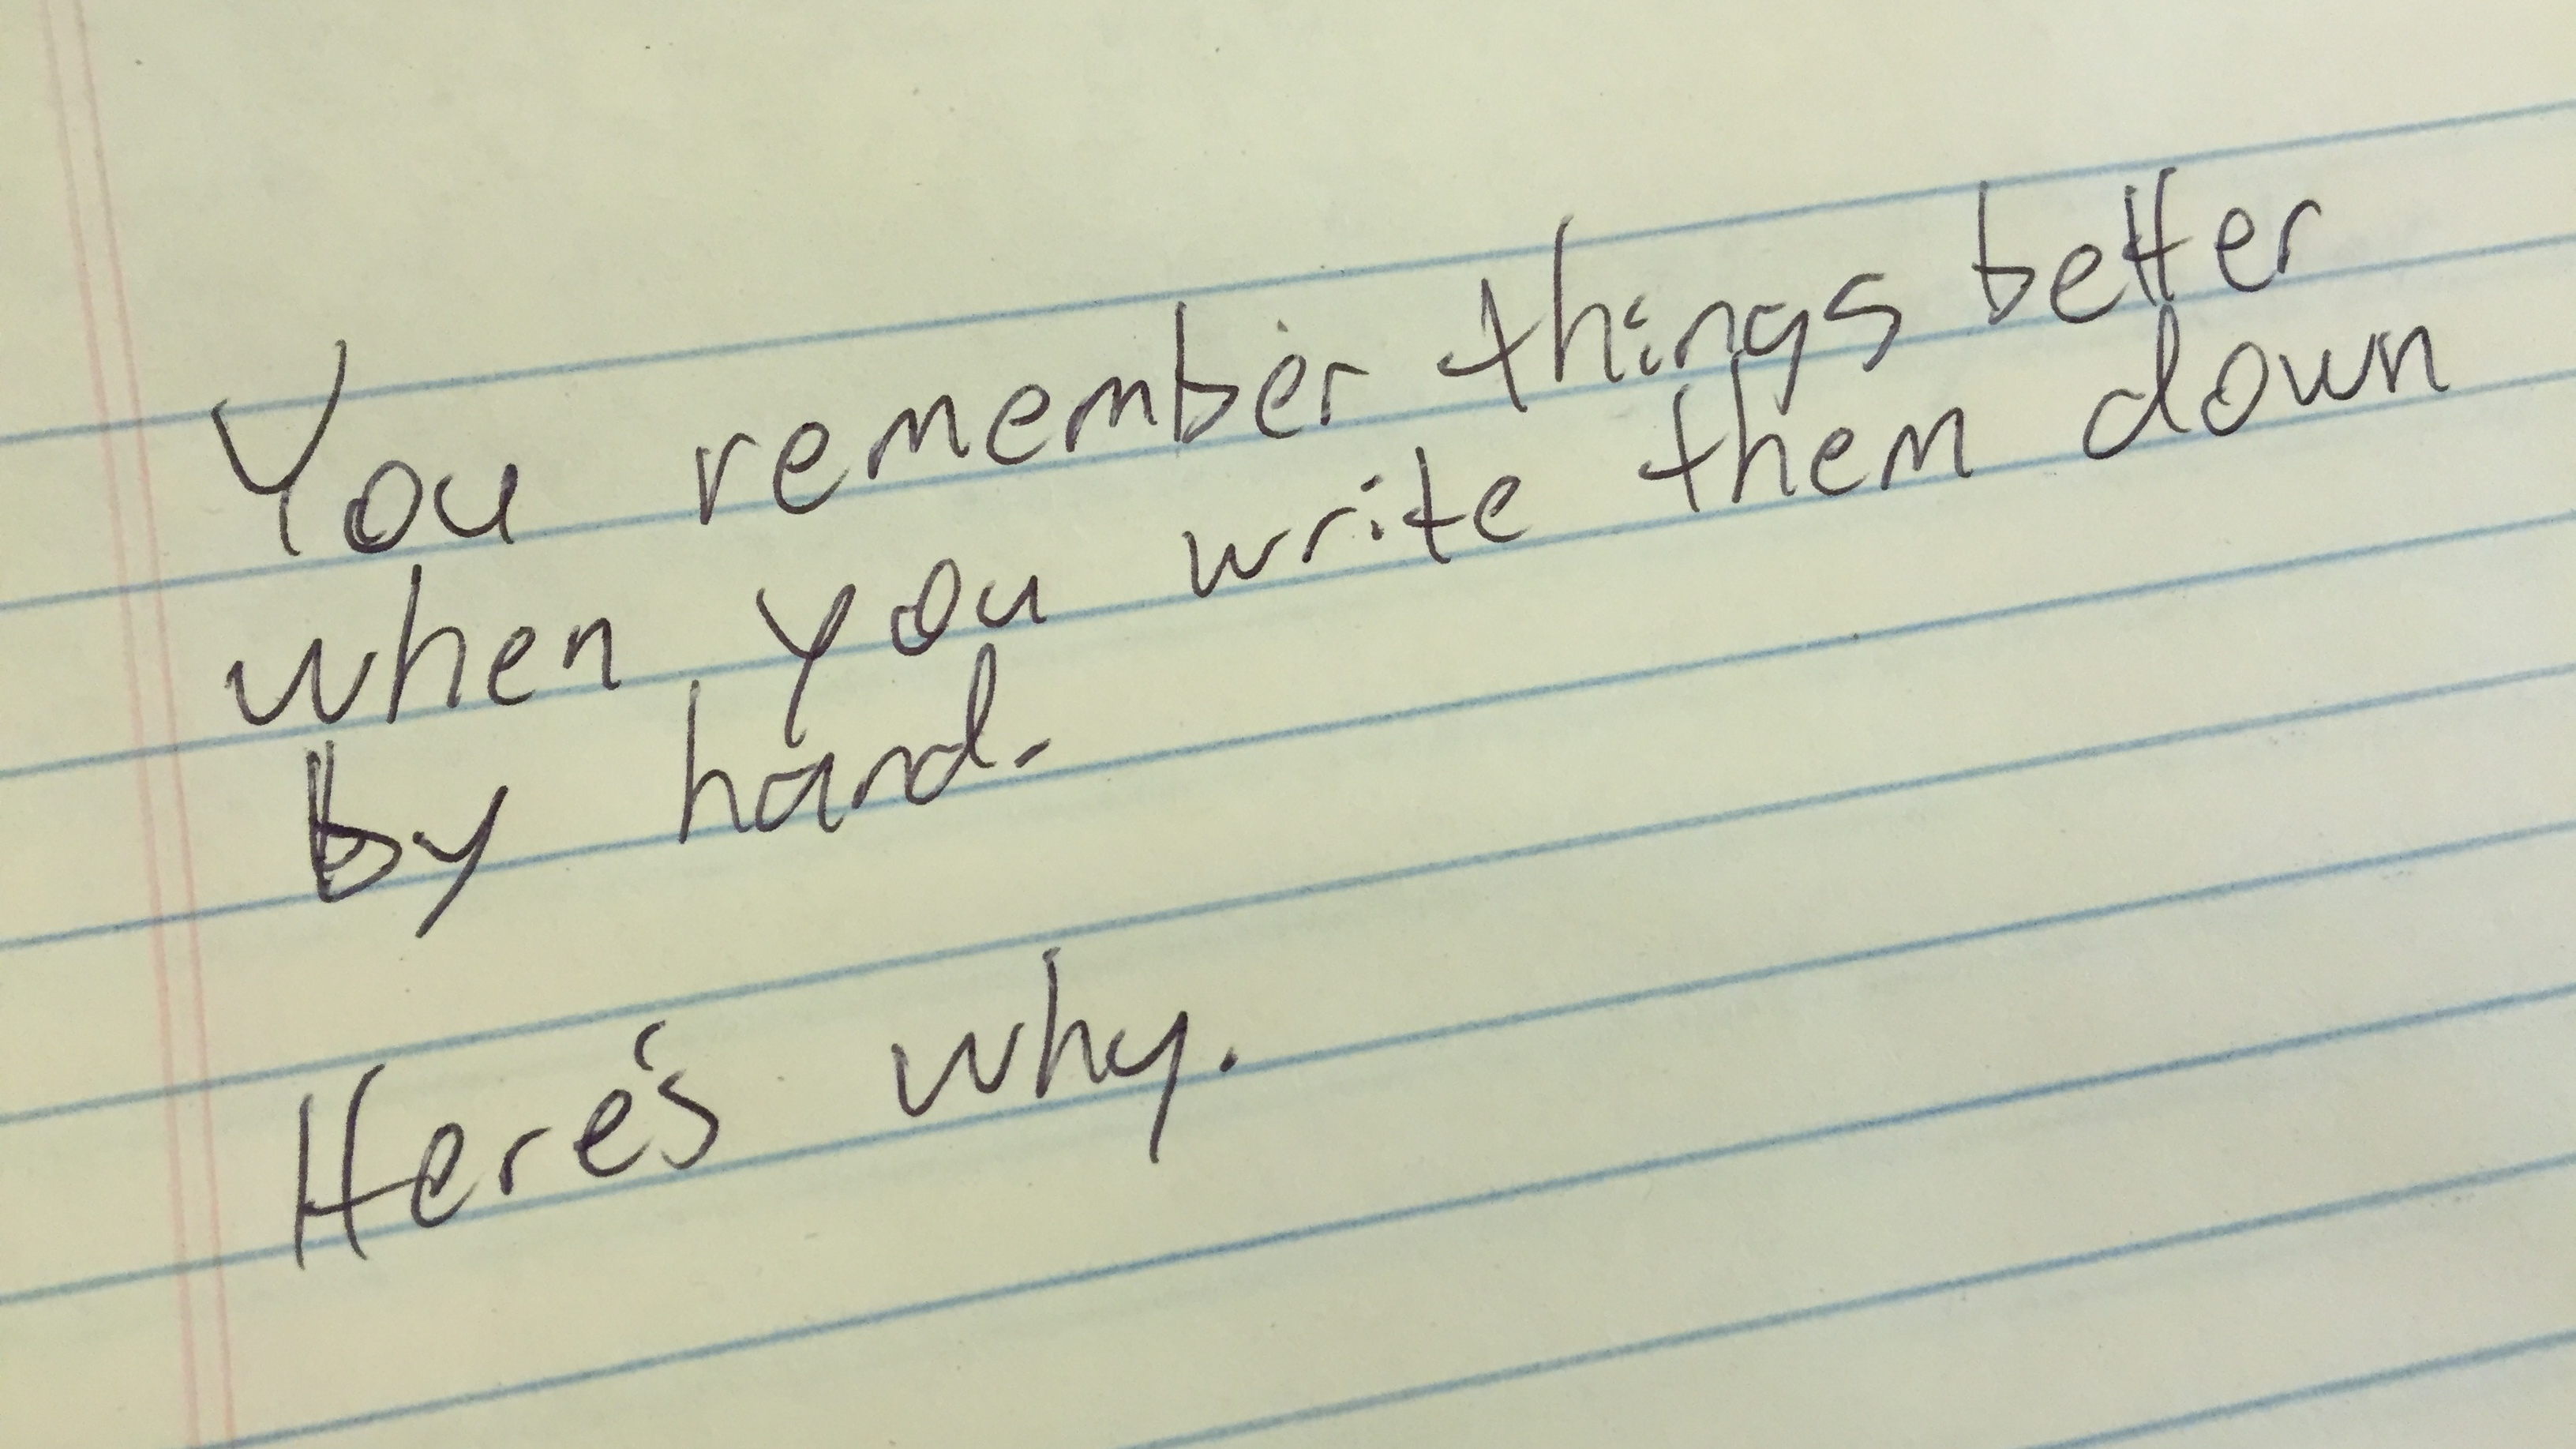 Book Quotes Wallpaper Cursive Taking Notes By Hand May Be Better Than Digitally